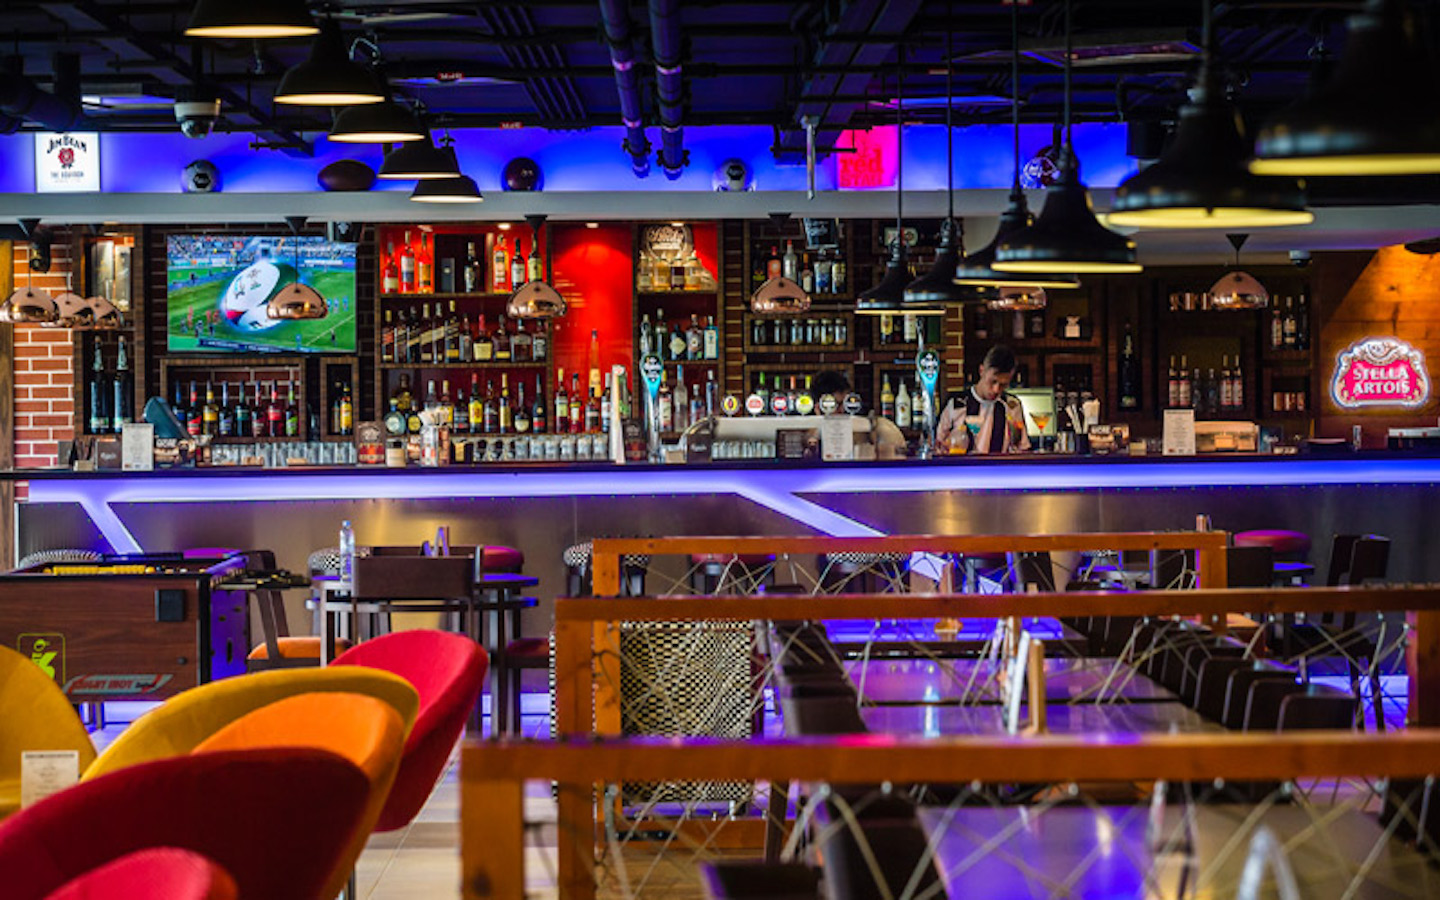 10 Best Sports Bars in Dubai with Happy Hour Deals - MyBayut